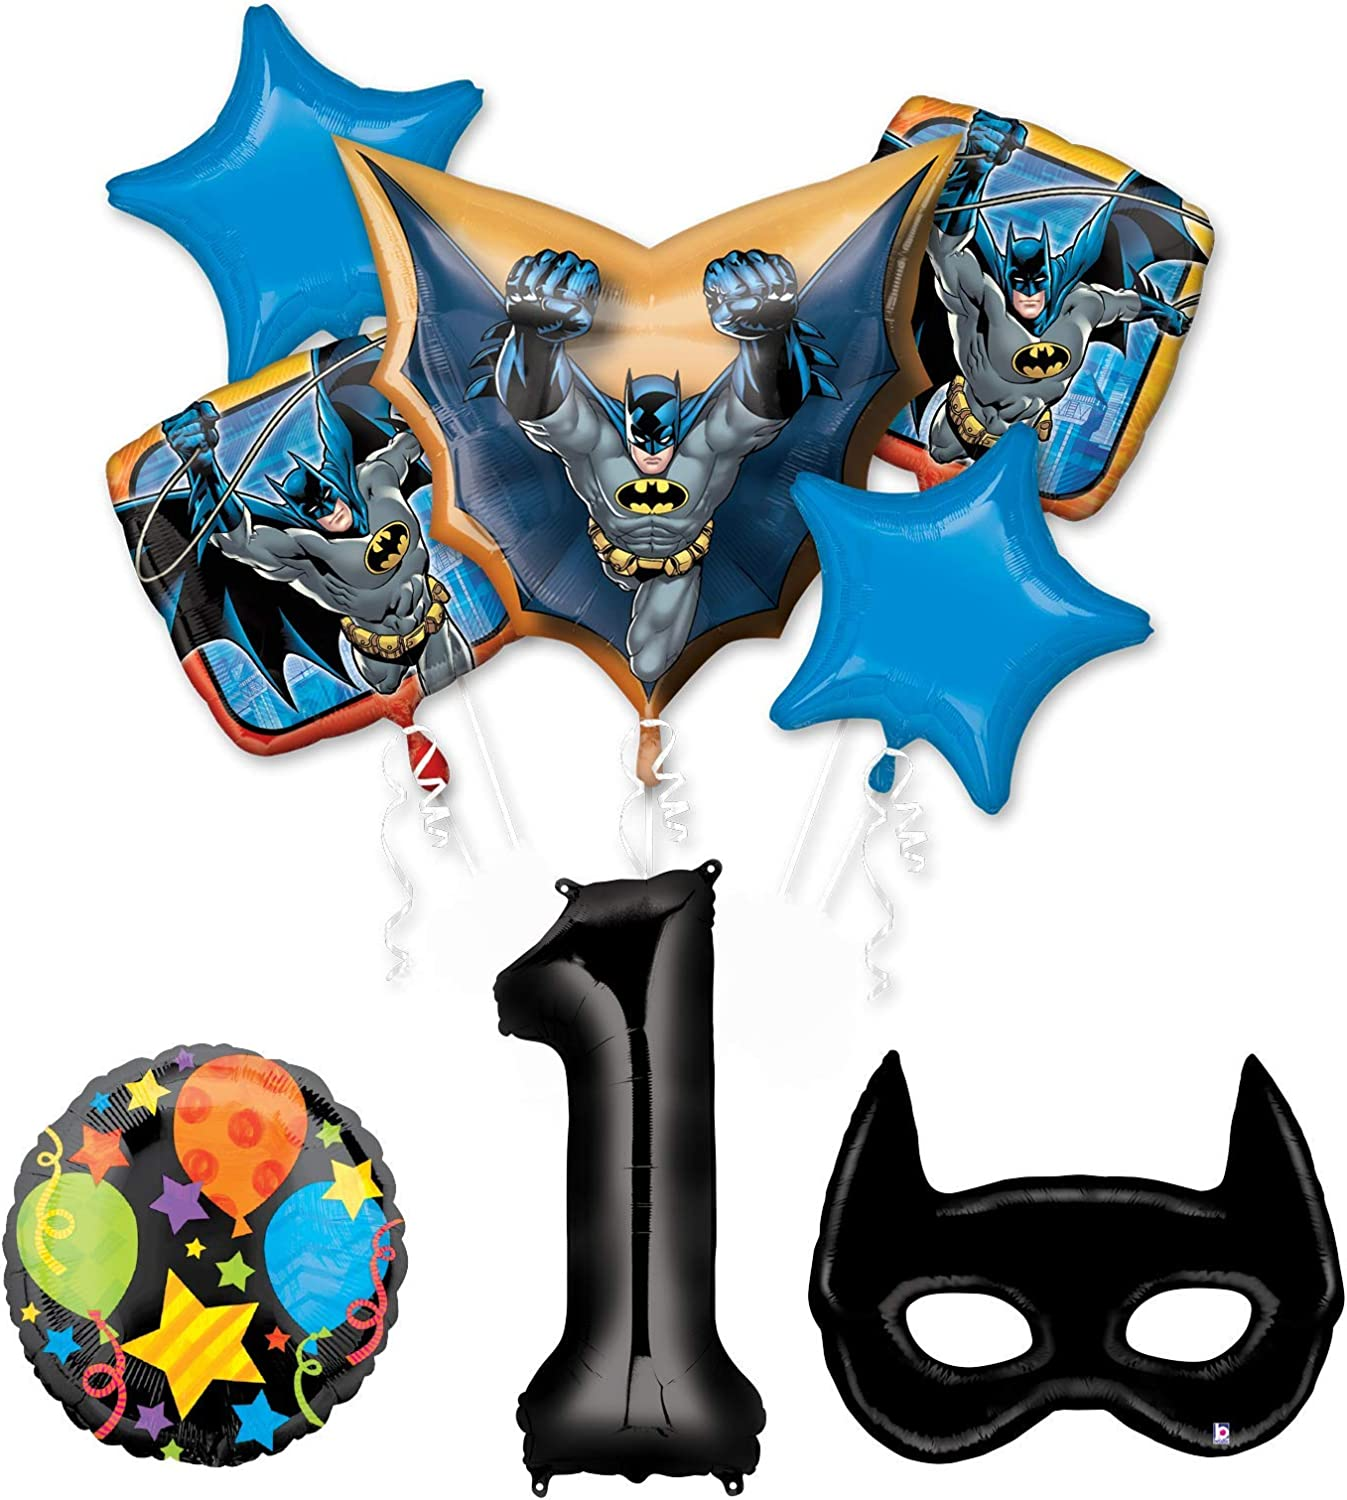 Mayflower Products Batman 1st Birthday Party Supplies and Bat Mask Balloon Bouquet Decoration